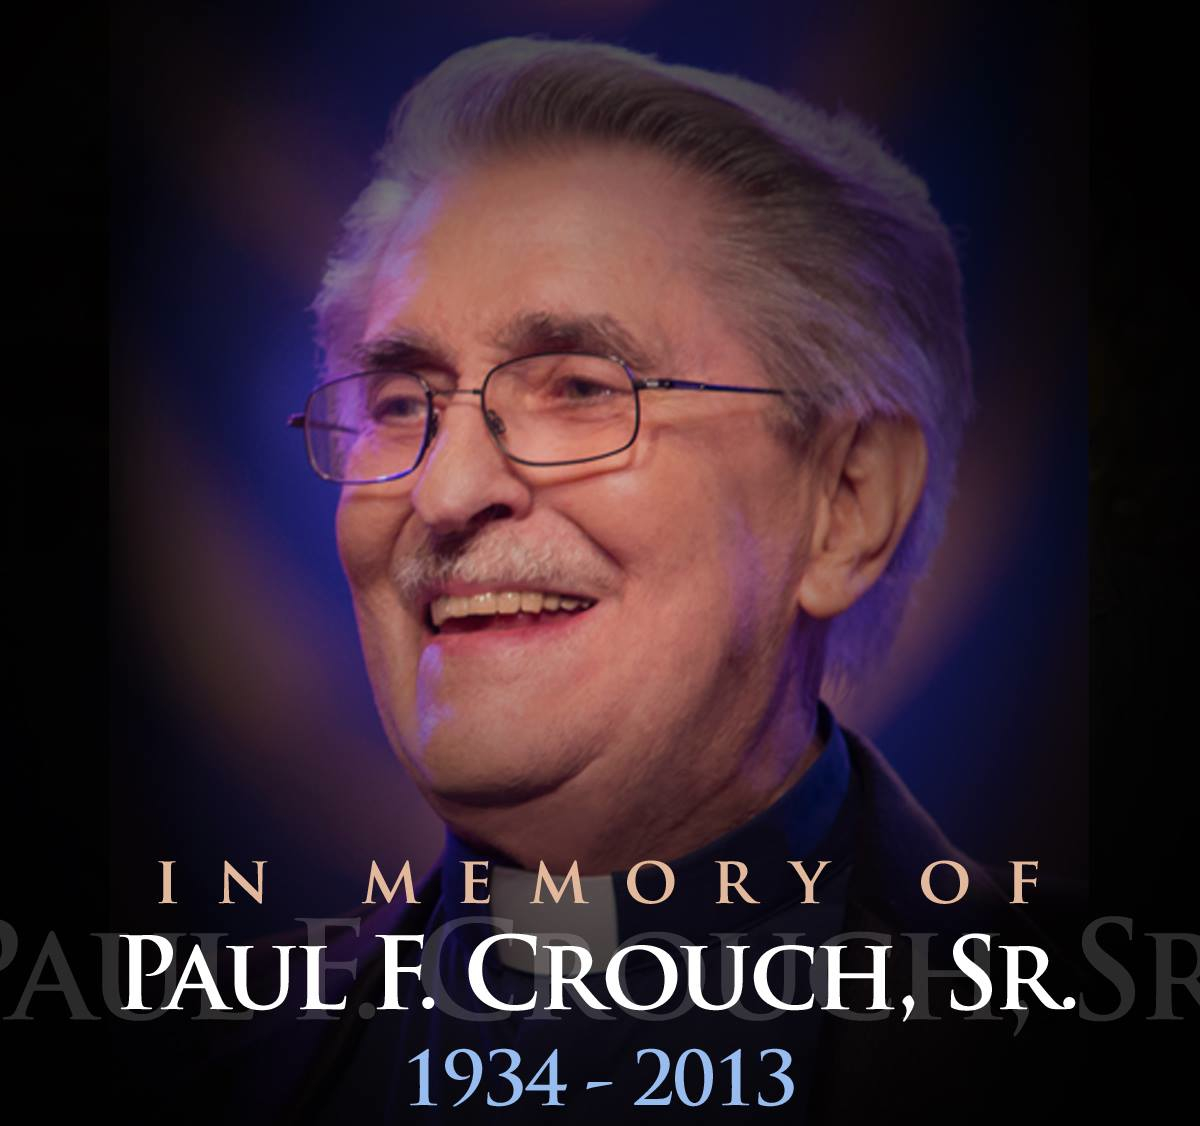 TBN Paul Crouch Funeral